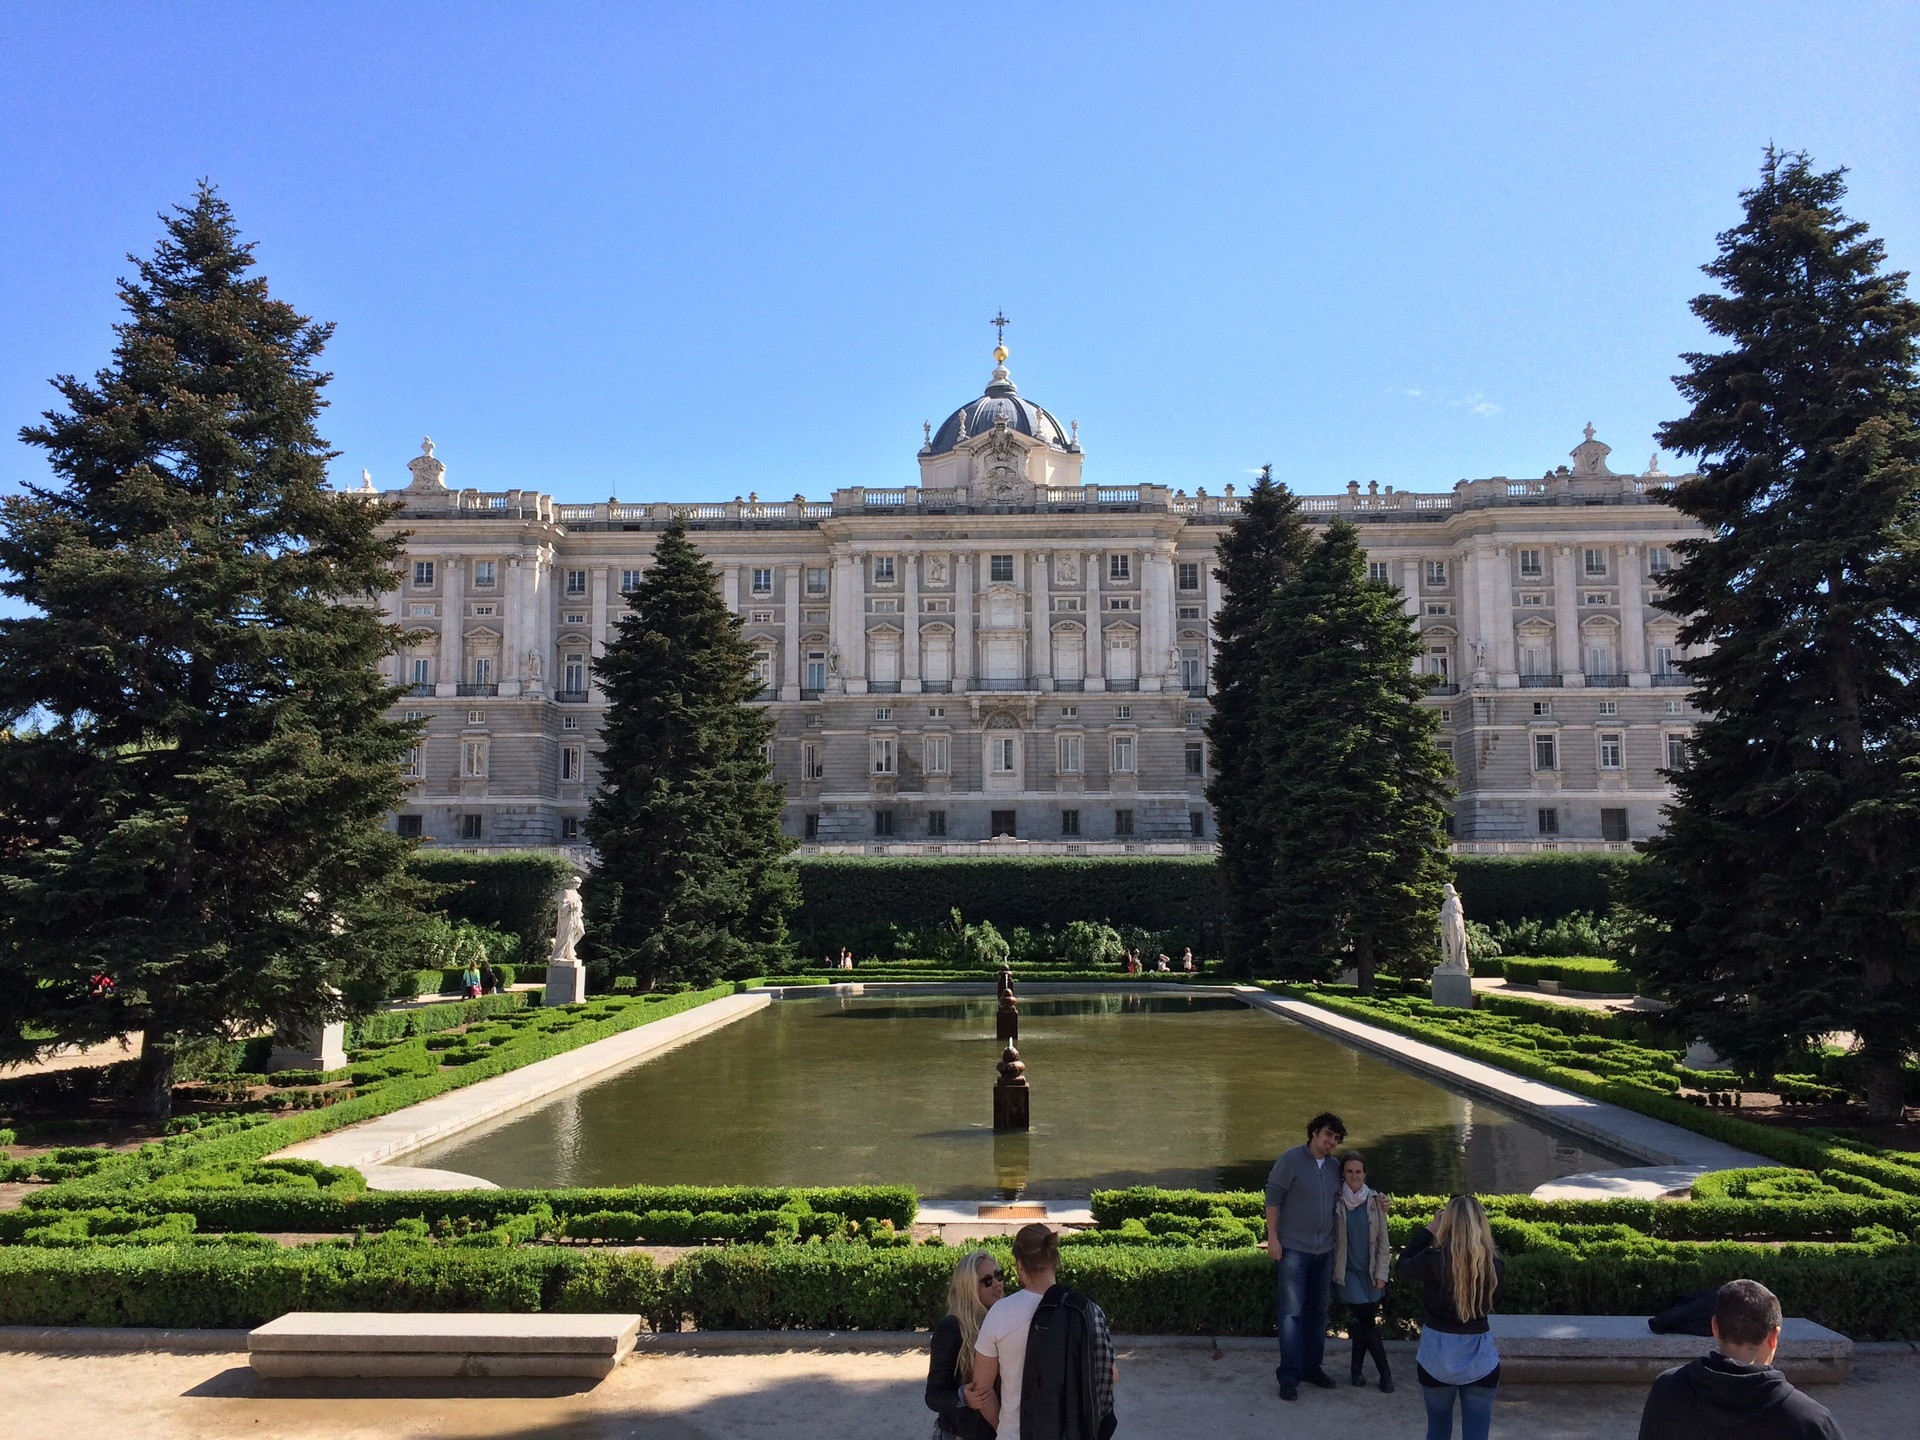 The Royal Palace | Spain, Madrid, hardrocker, architecture